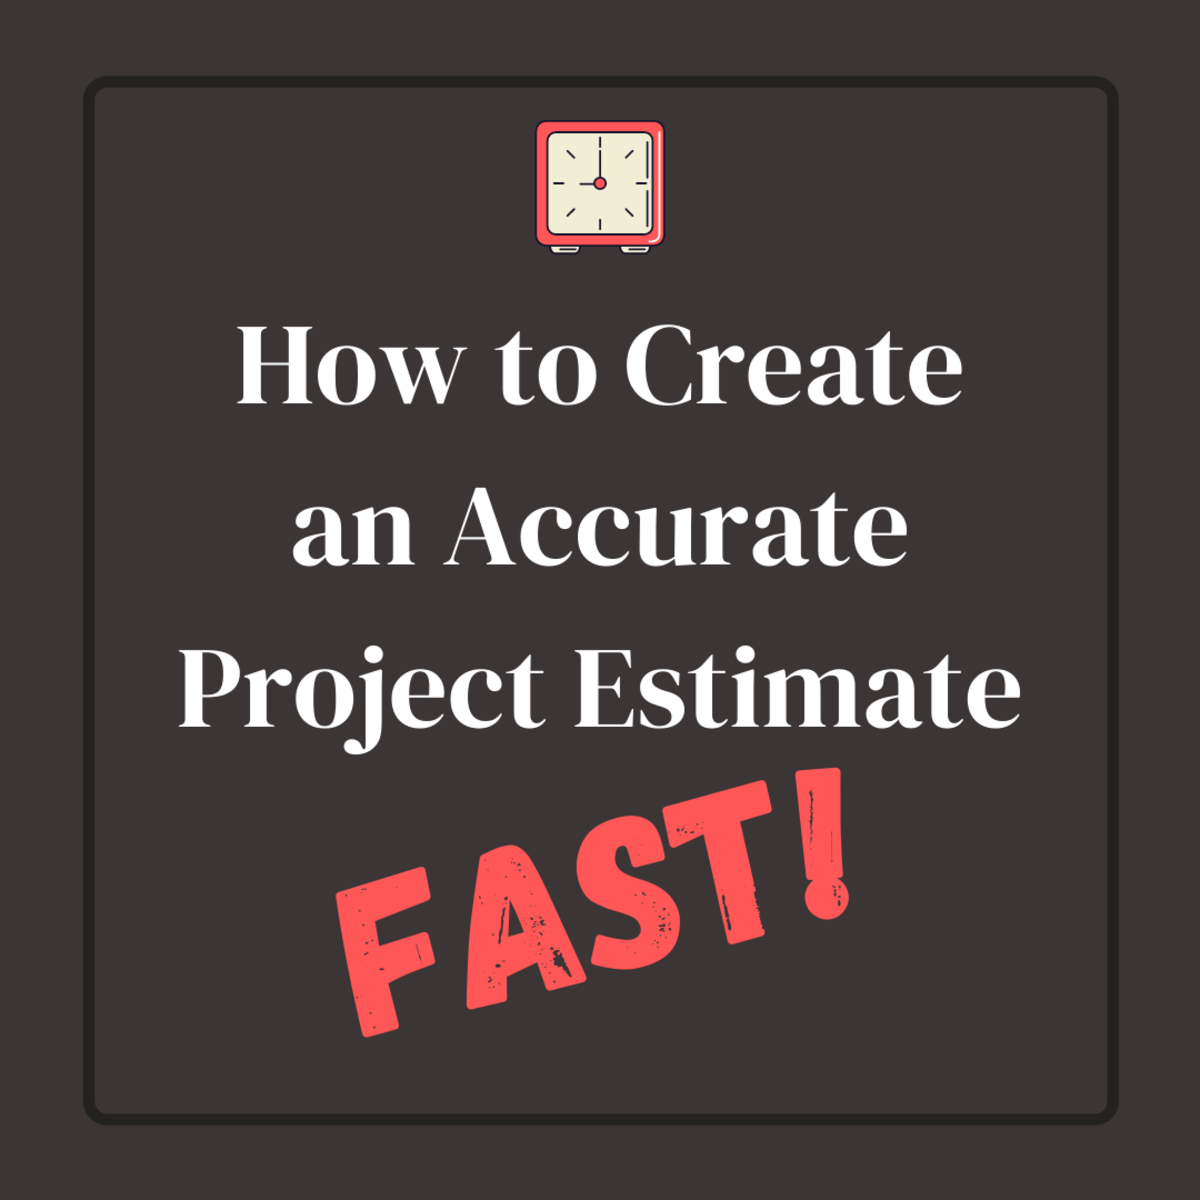 How to Create an Accurate Project Timeline and Cost Estimate